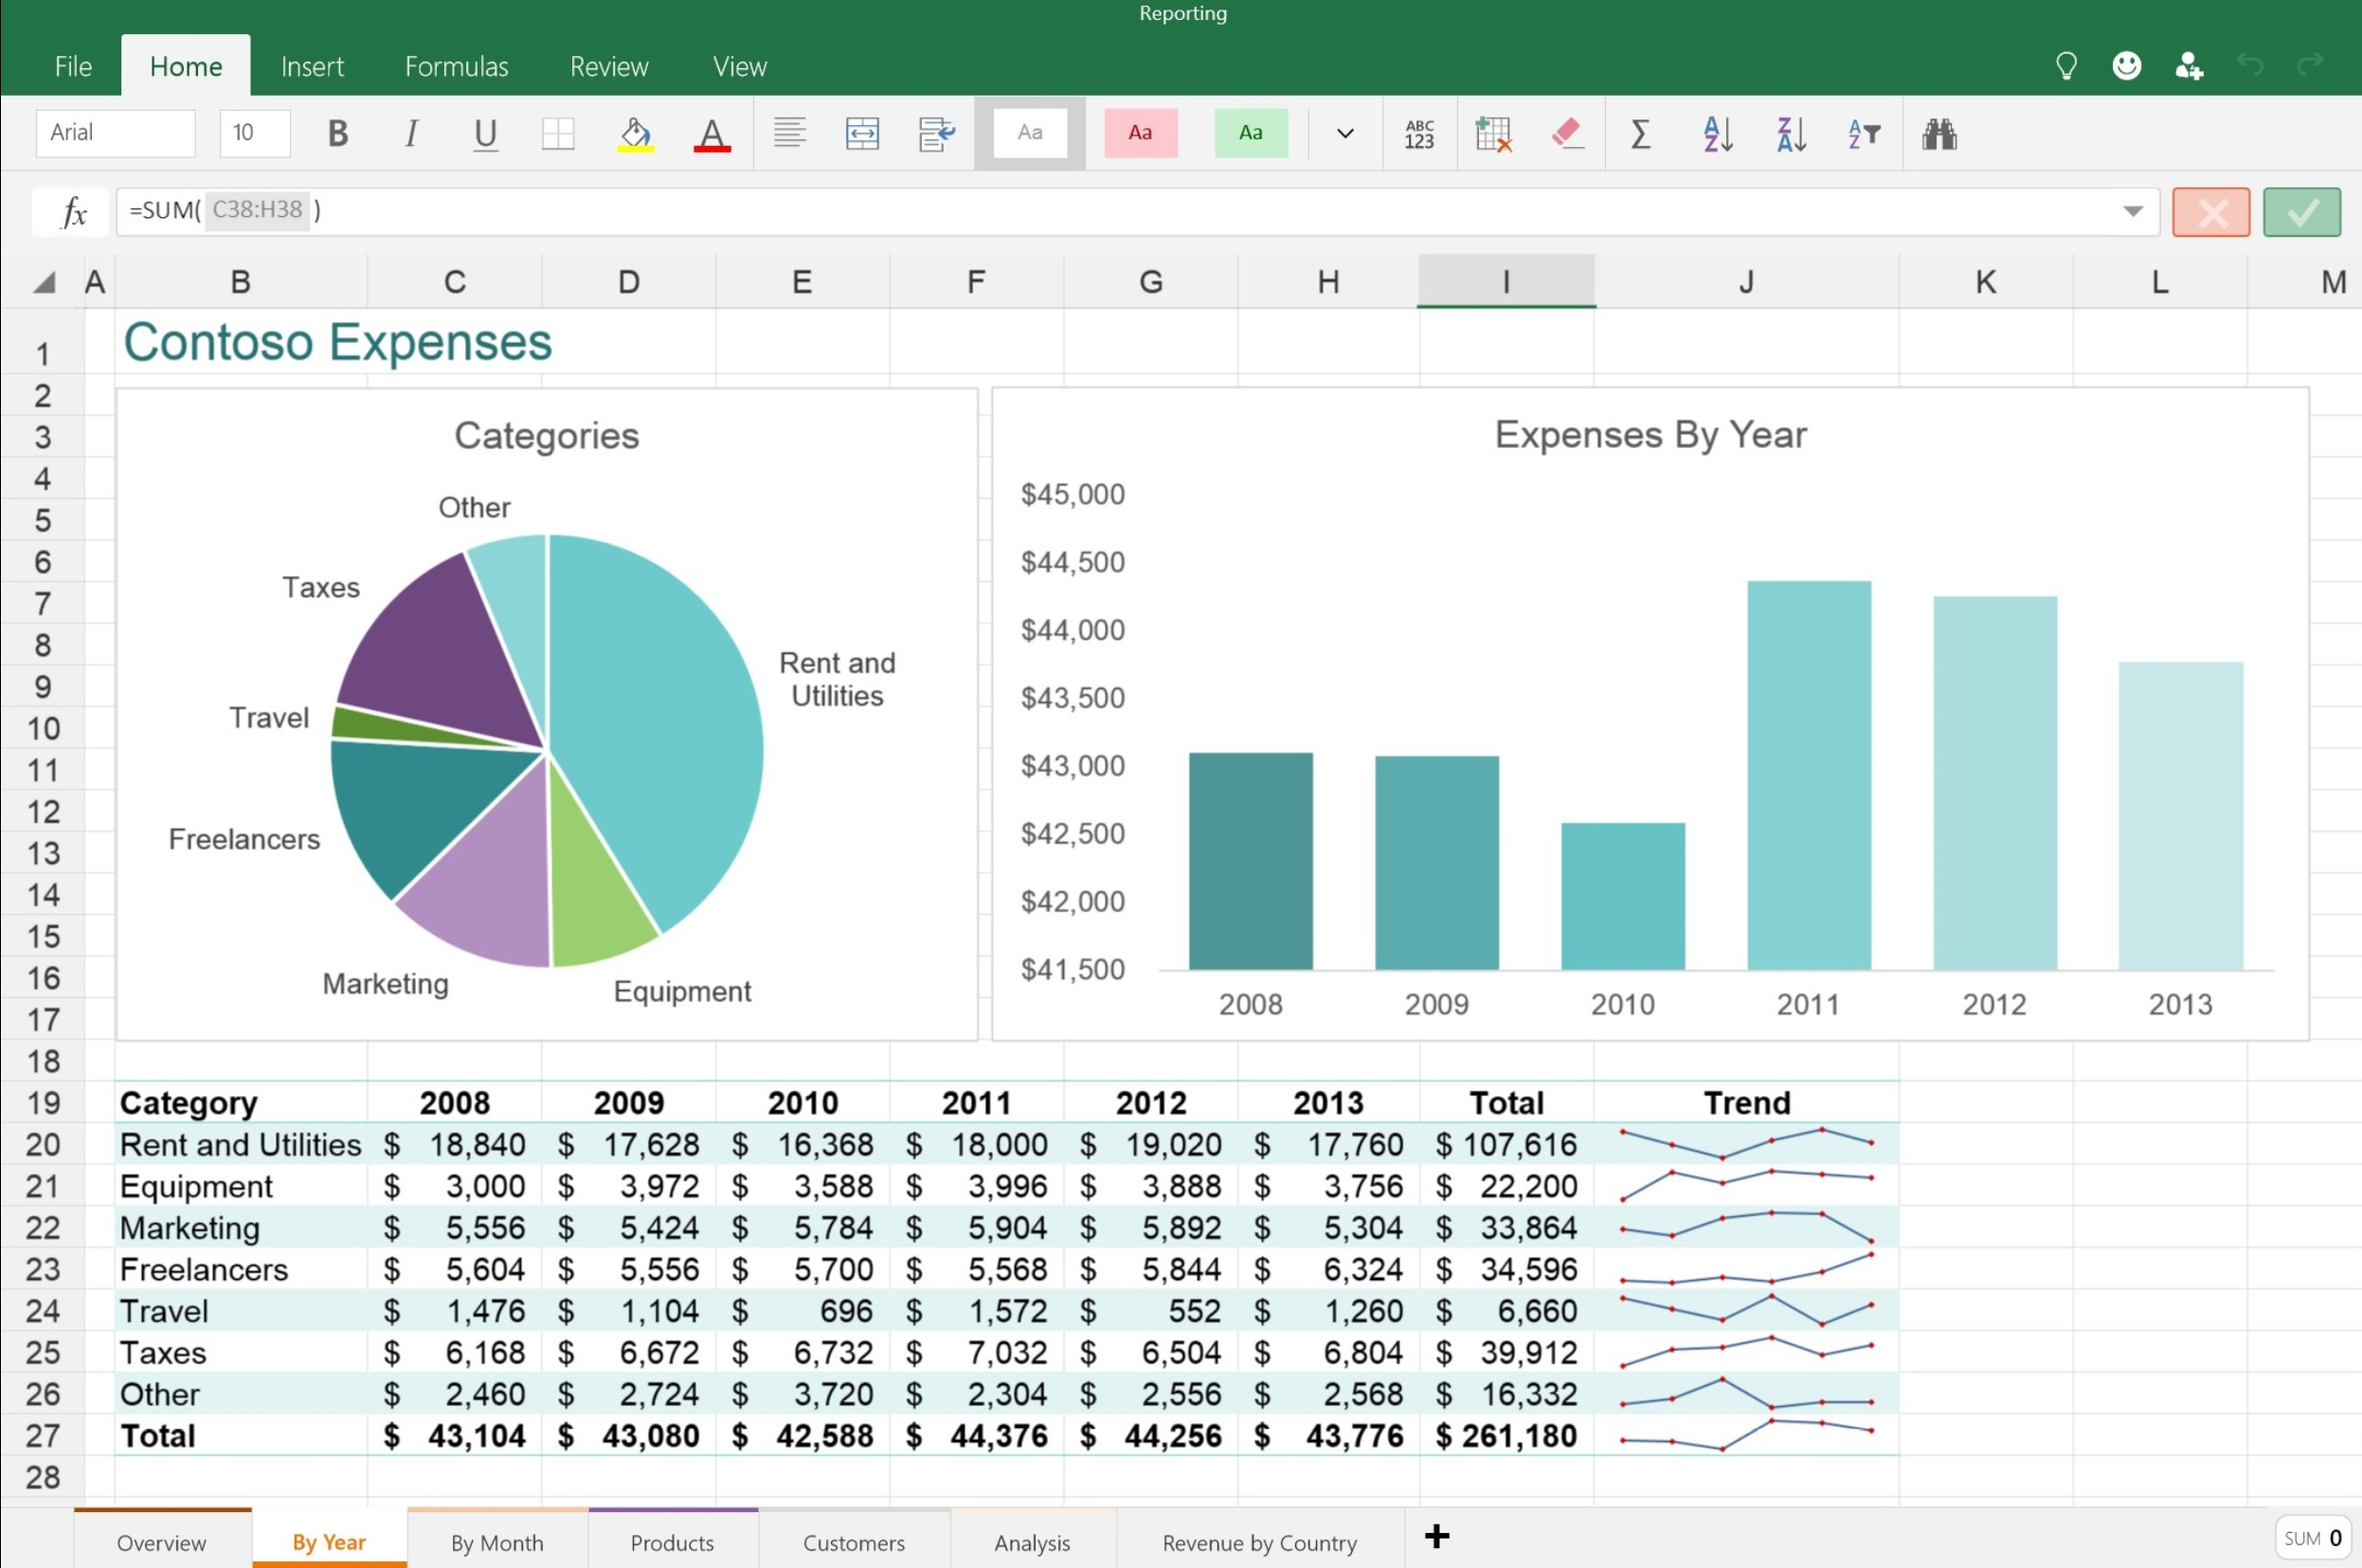 Ediblewildsus  Prepossessing Features Available In The New Word Excel And Powerpoint Apps For  With Magnificent Excel Touch App  With Comely How To Change Cell Color In Excel Also What Is A Sparkline In Excel In Addition How To Calculate Compound Interest In Excel And How To Lock An Excel Spreadsheet As Well As Excel Fv Function Additionally How To Do Subtotals In Excel From Mspowerusercom With Ediblewildsus  Magnificent Features Available In The New Word Excel And Powerpoint Apps For  With Comely Excel Touch App  And Prepossessing How To Change Cell Color In Excel Also What Is A Sparkline In Excel In Addition How To Calculate Compound Interest In Excel From Mspowerusercom